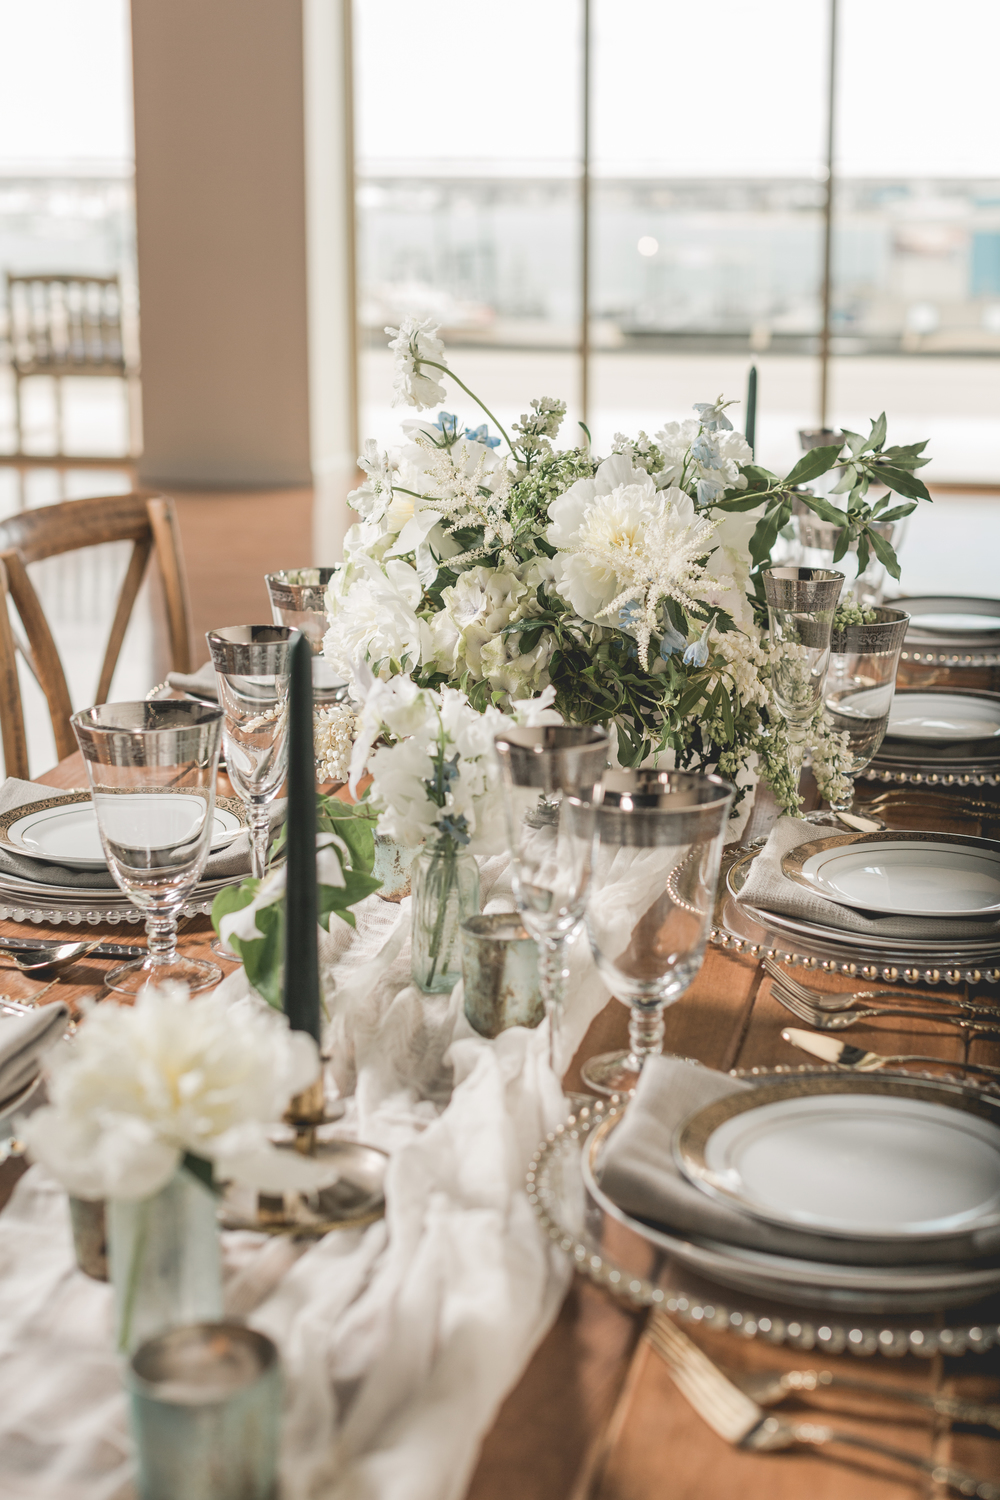 Whaling_Museum_Styled_Shoot_guesttable_4-19-16-34.jpg